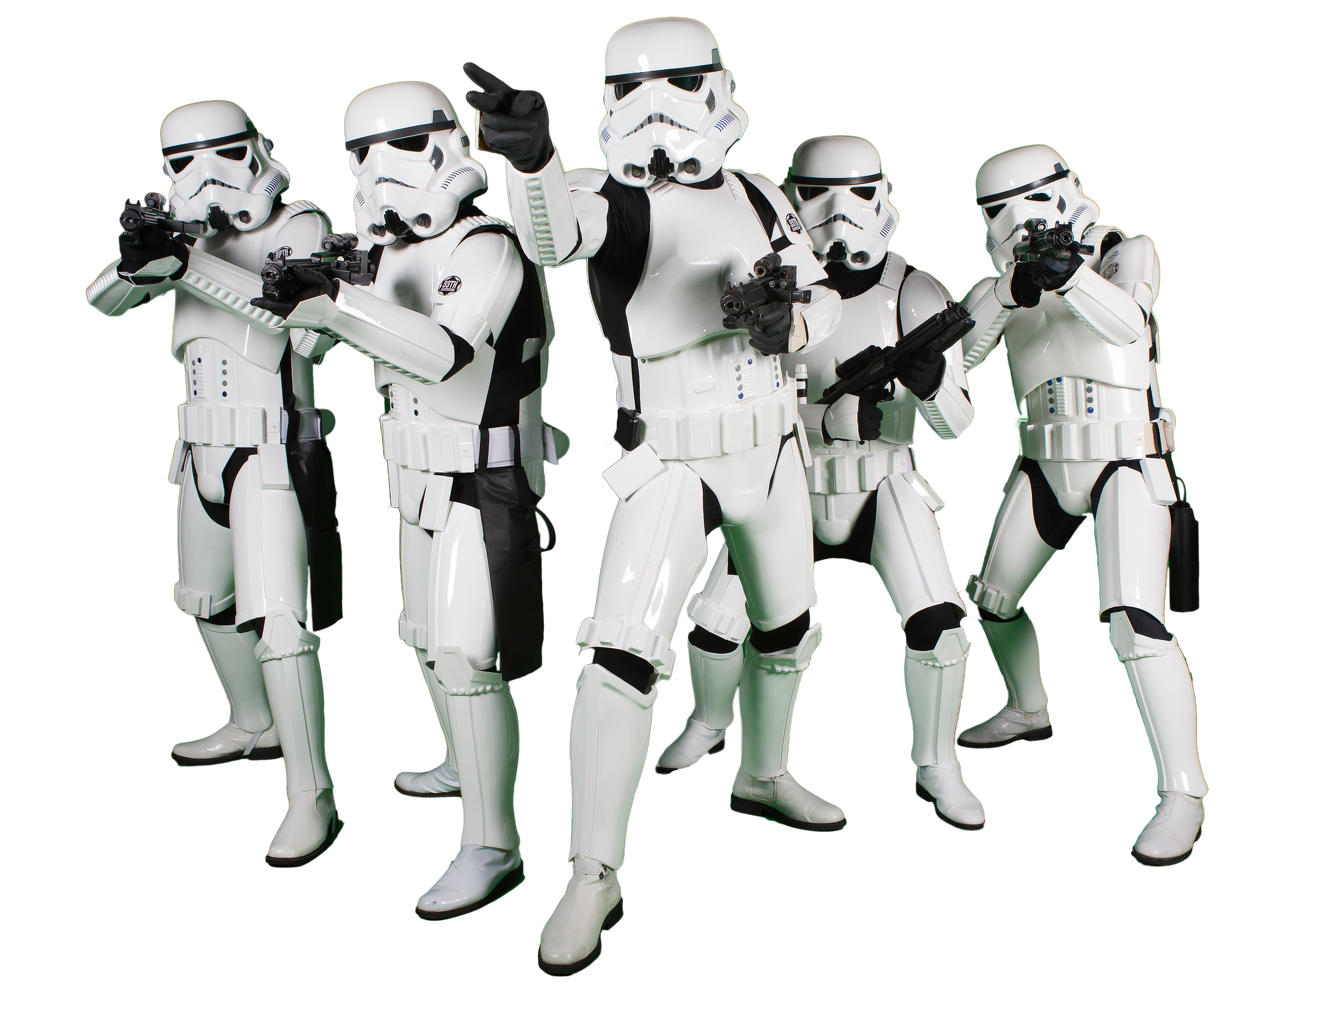 Star wars empire clipart jpg royalty free download Stormtrooper PNG Image - PurePNG | Free transparent CC0 PNG Image ... jpg royalty free download